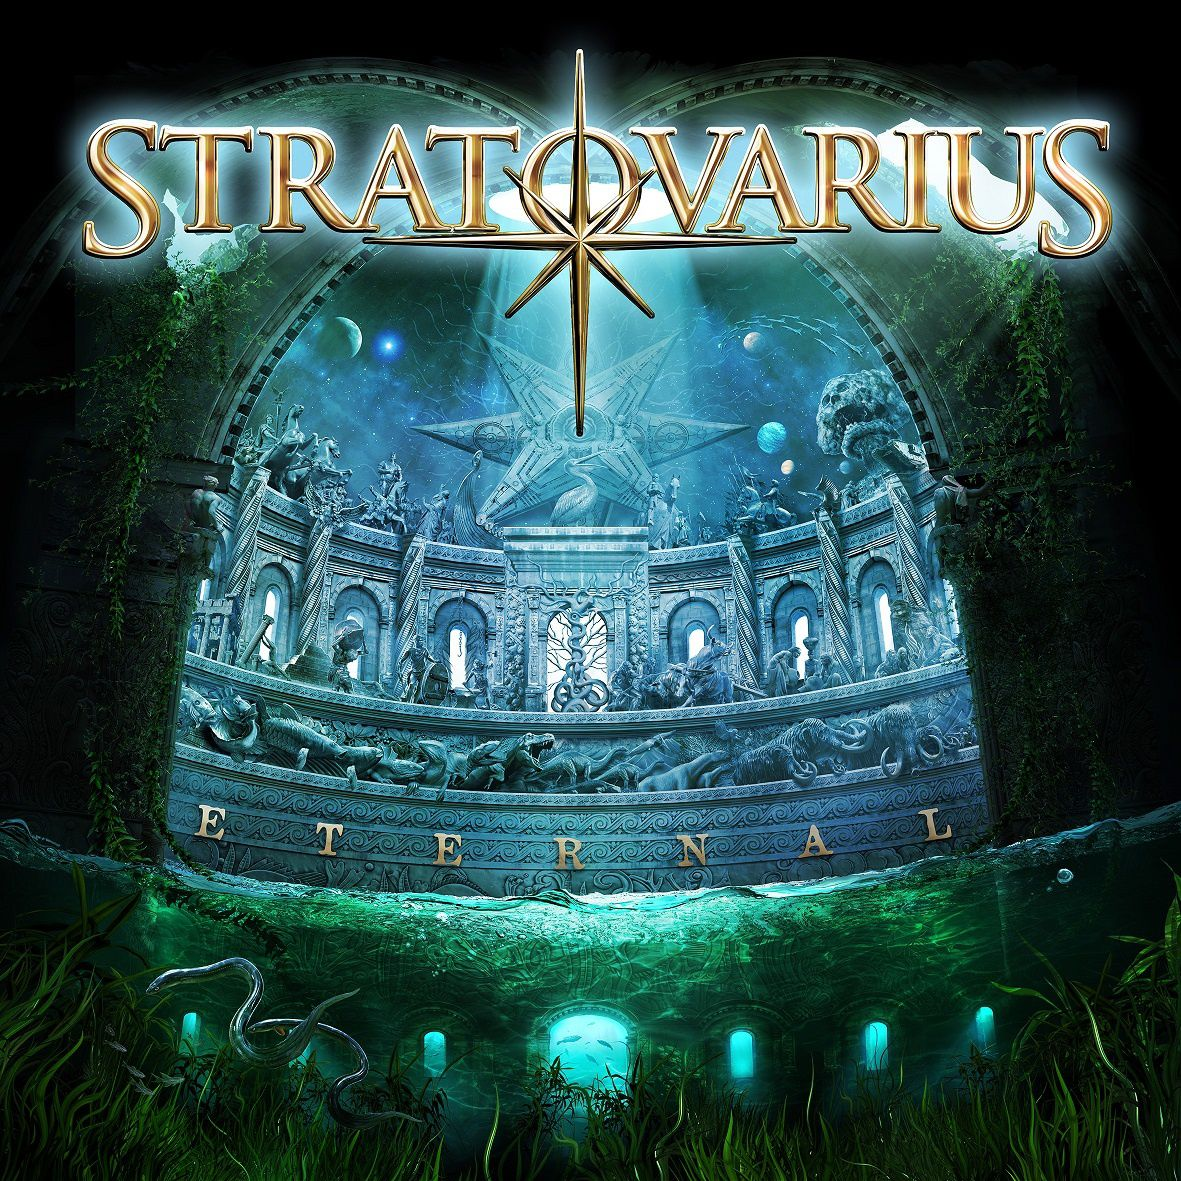 New video from STRATOVARIUS